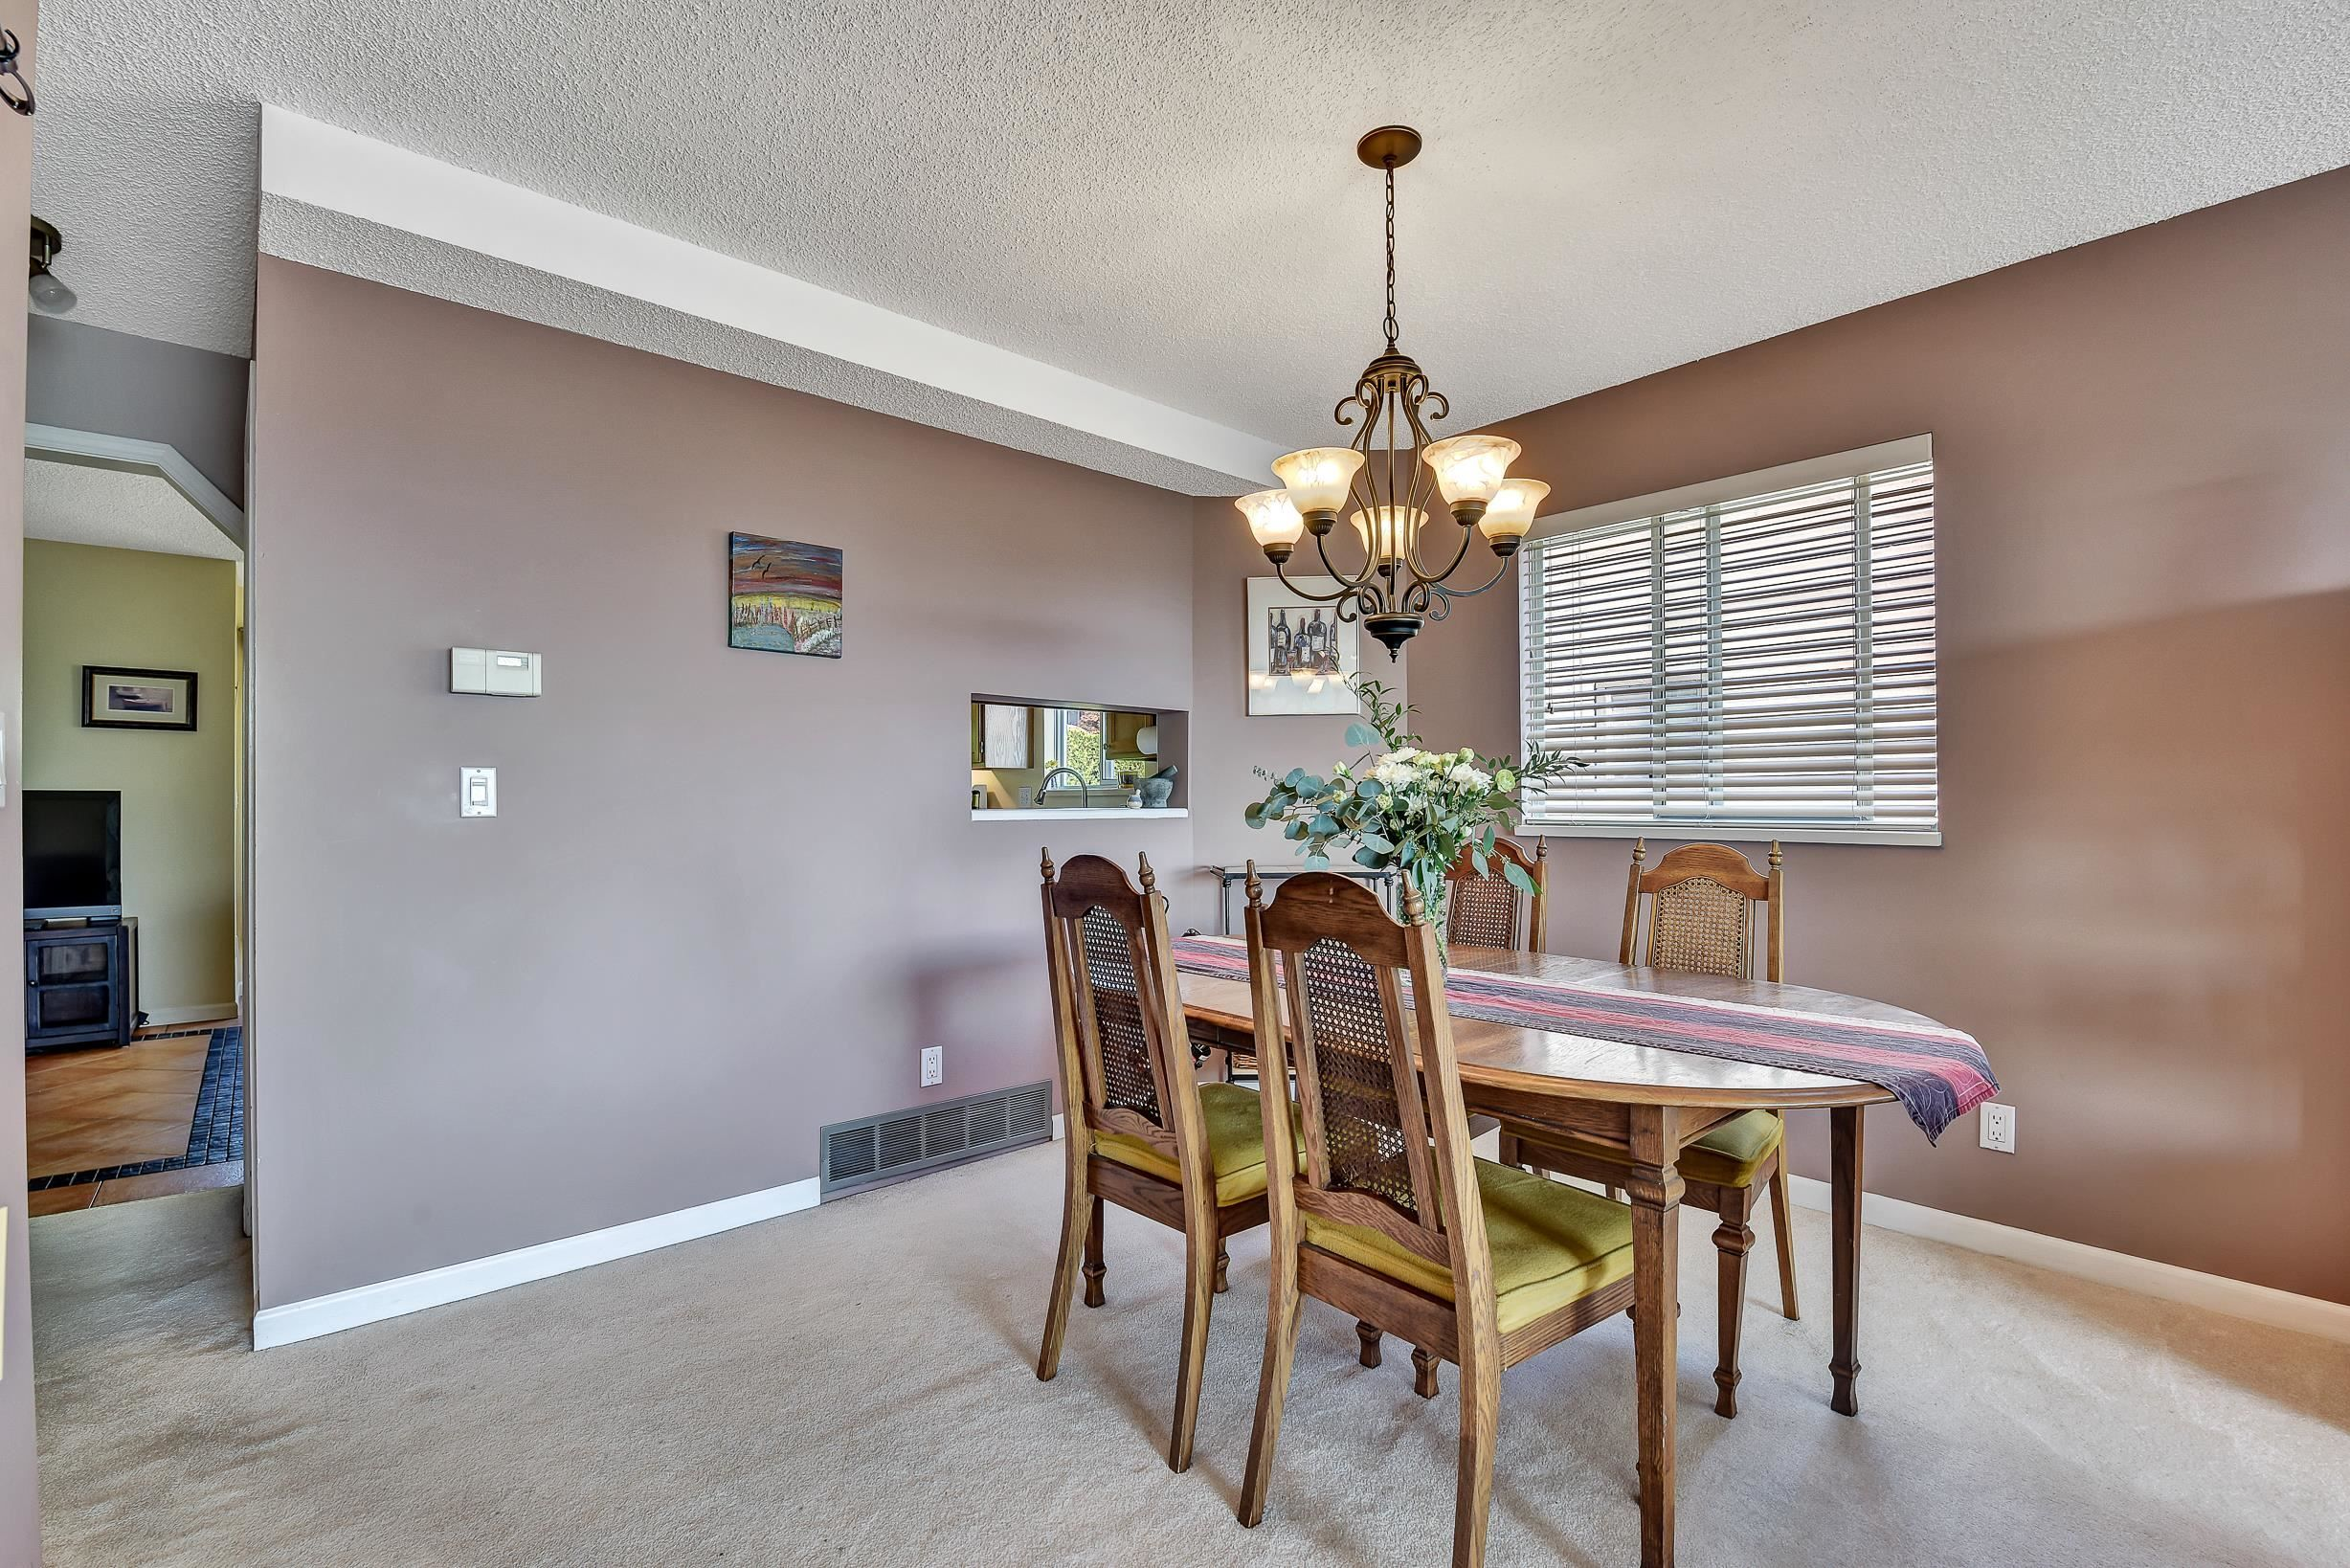 """Photo 8: Photos: 208 1140 CASTLE Crescent in Port Coquitlam: Citadel PQ Townhouse for sale in """"THE UPLANDS"""" : MLS®# R2609078"""